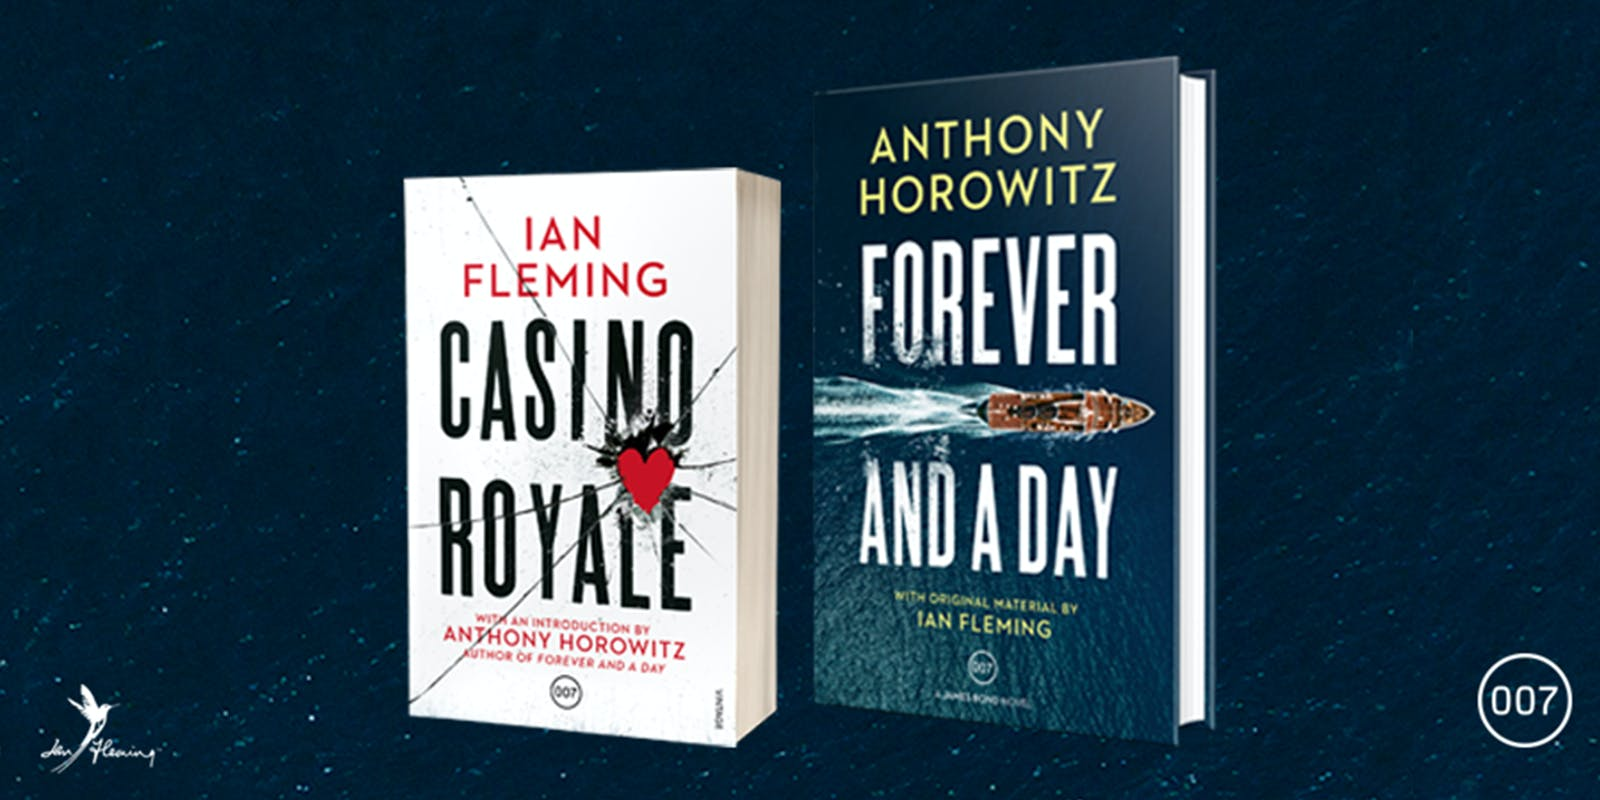 7 things to know about the new James Bond book by Anthony Horowitz